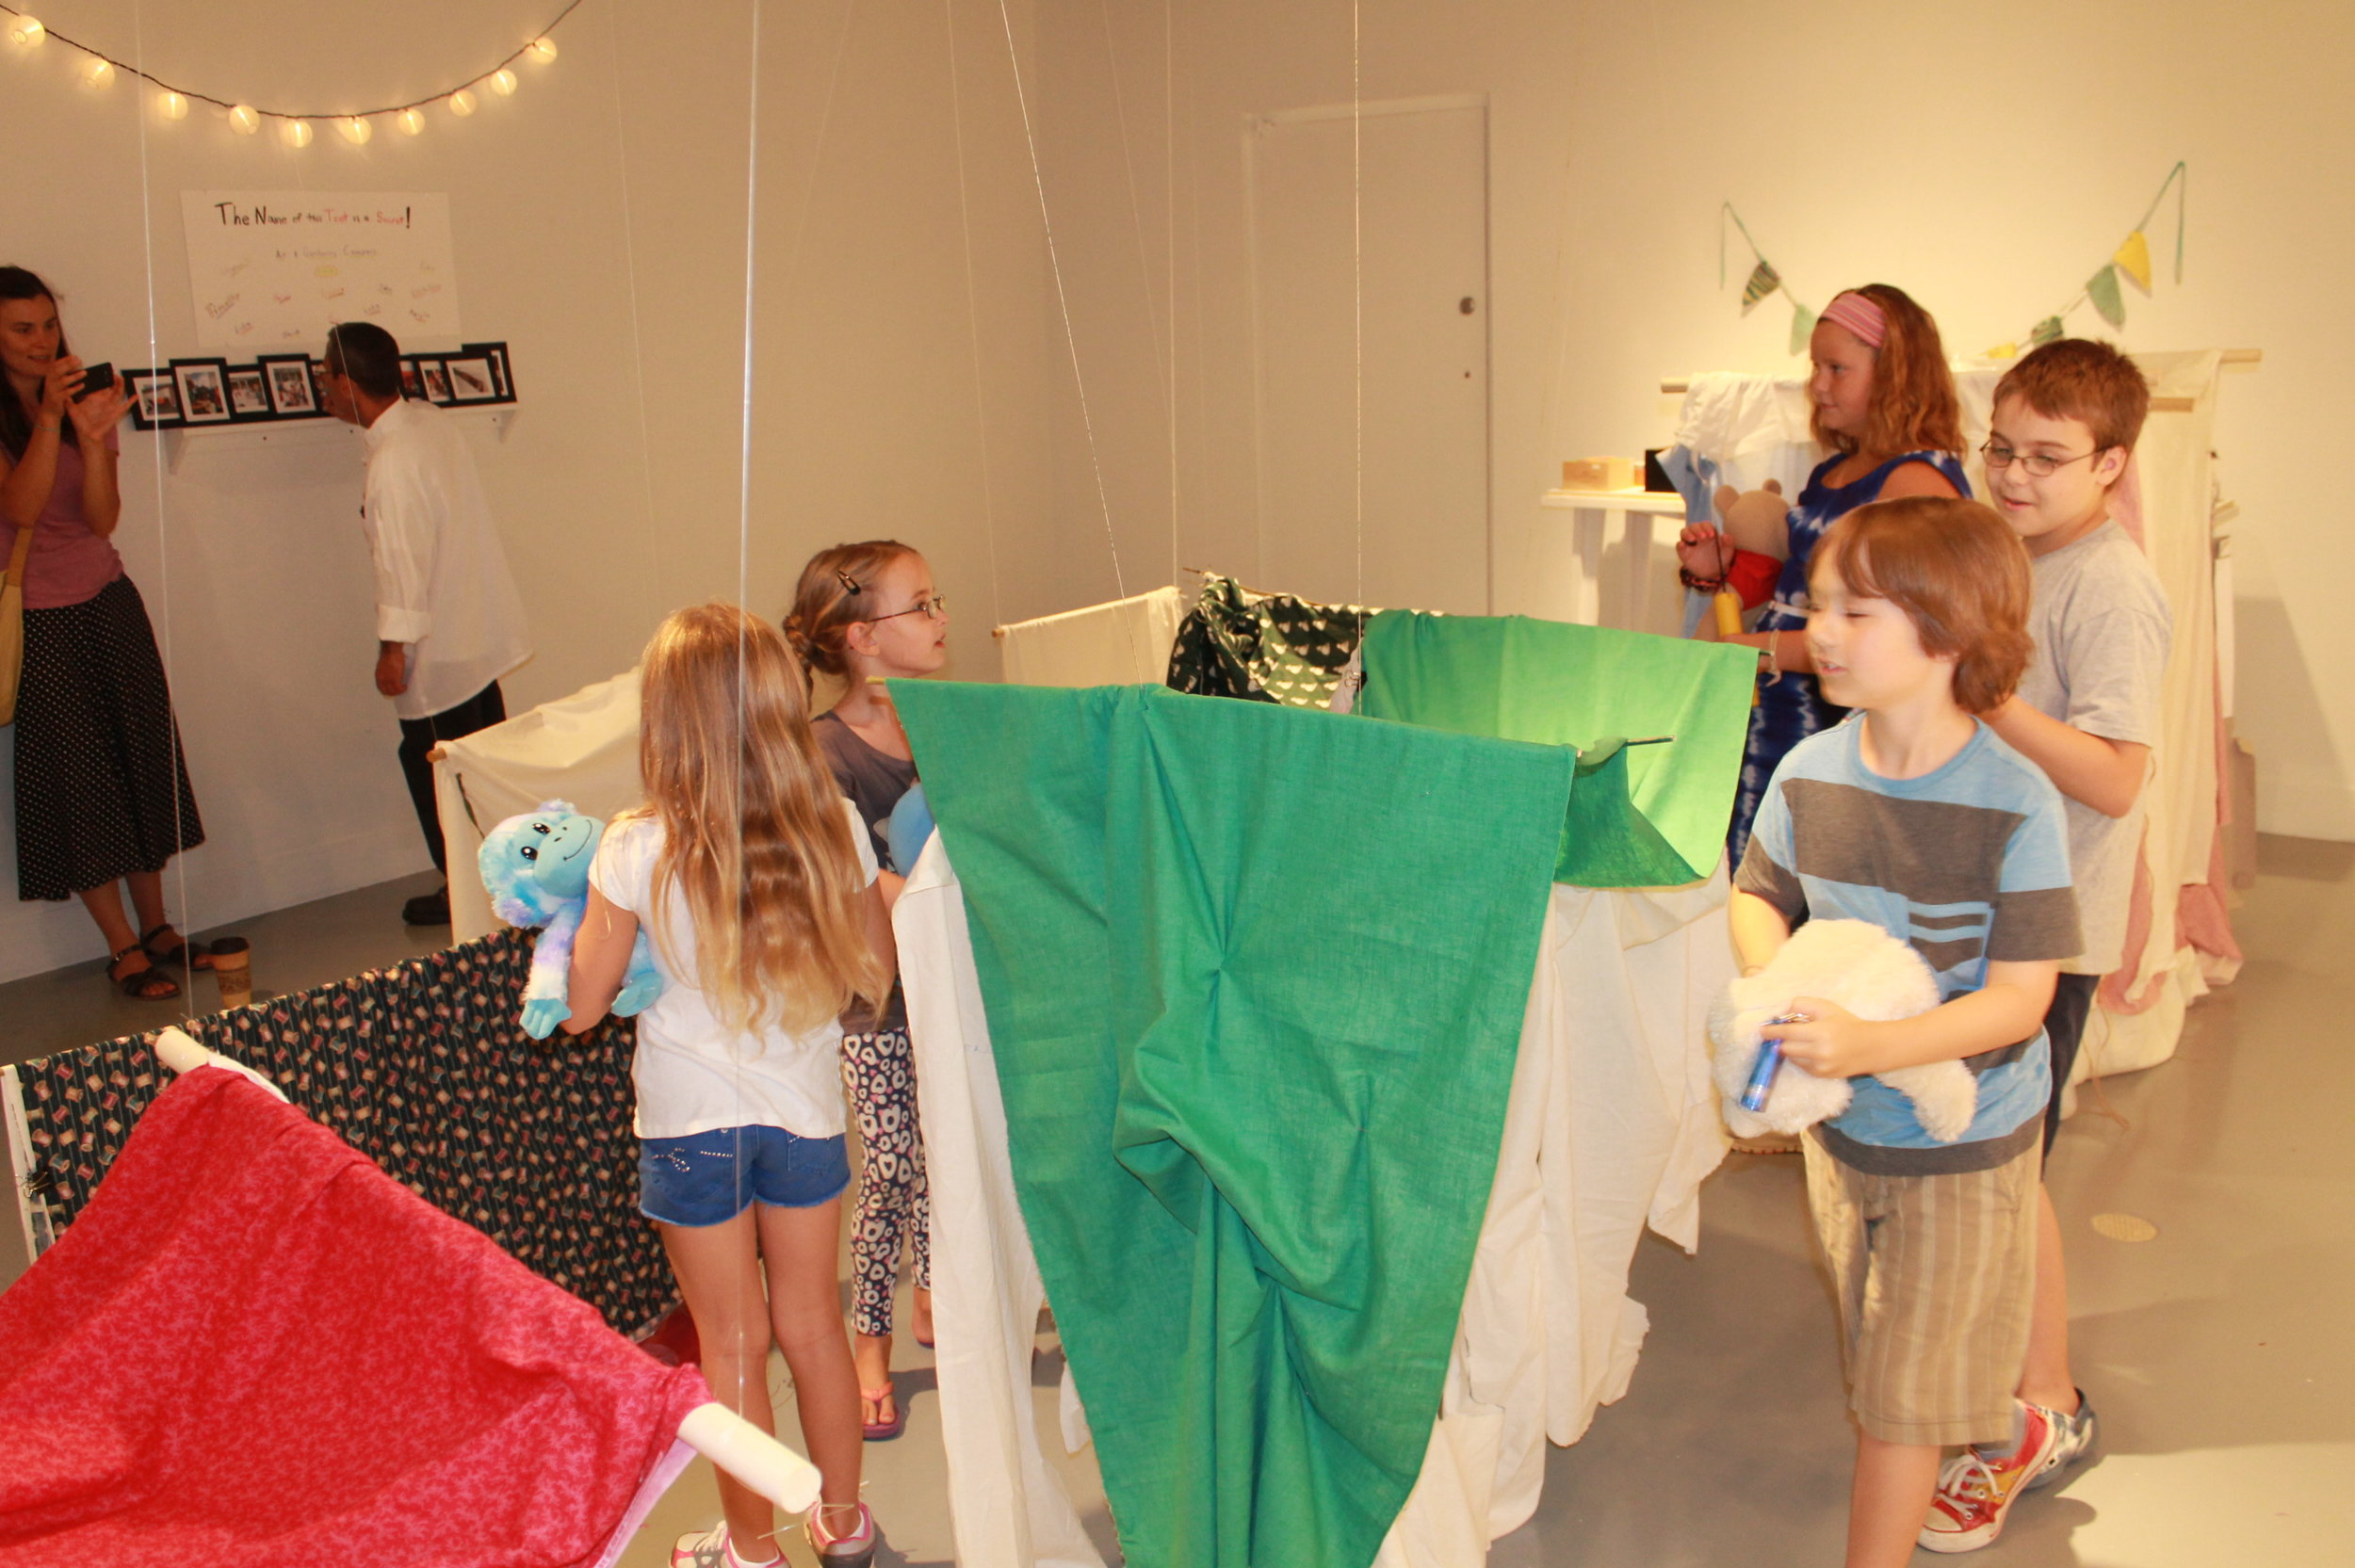 Design your own tent exhibition